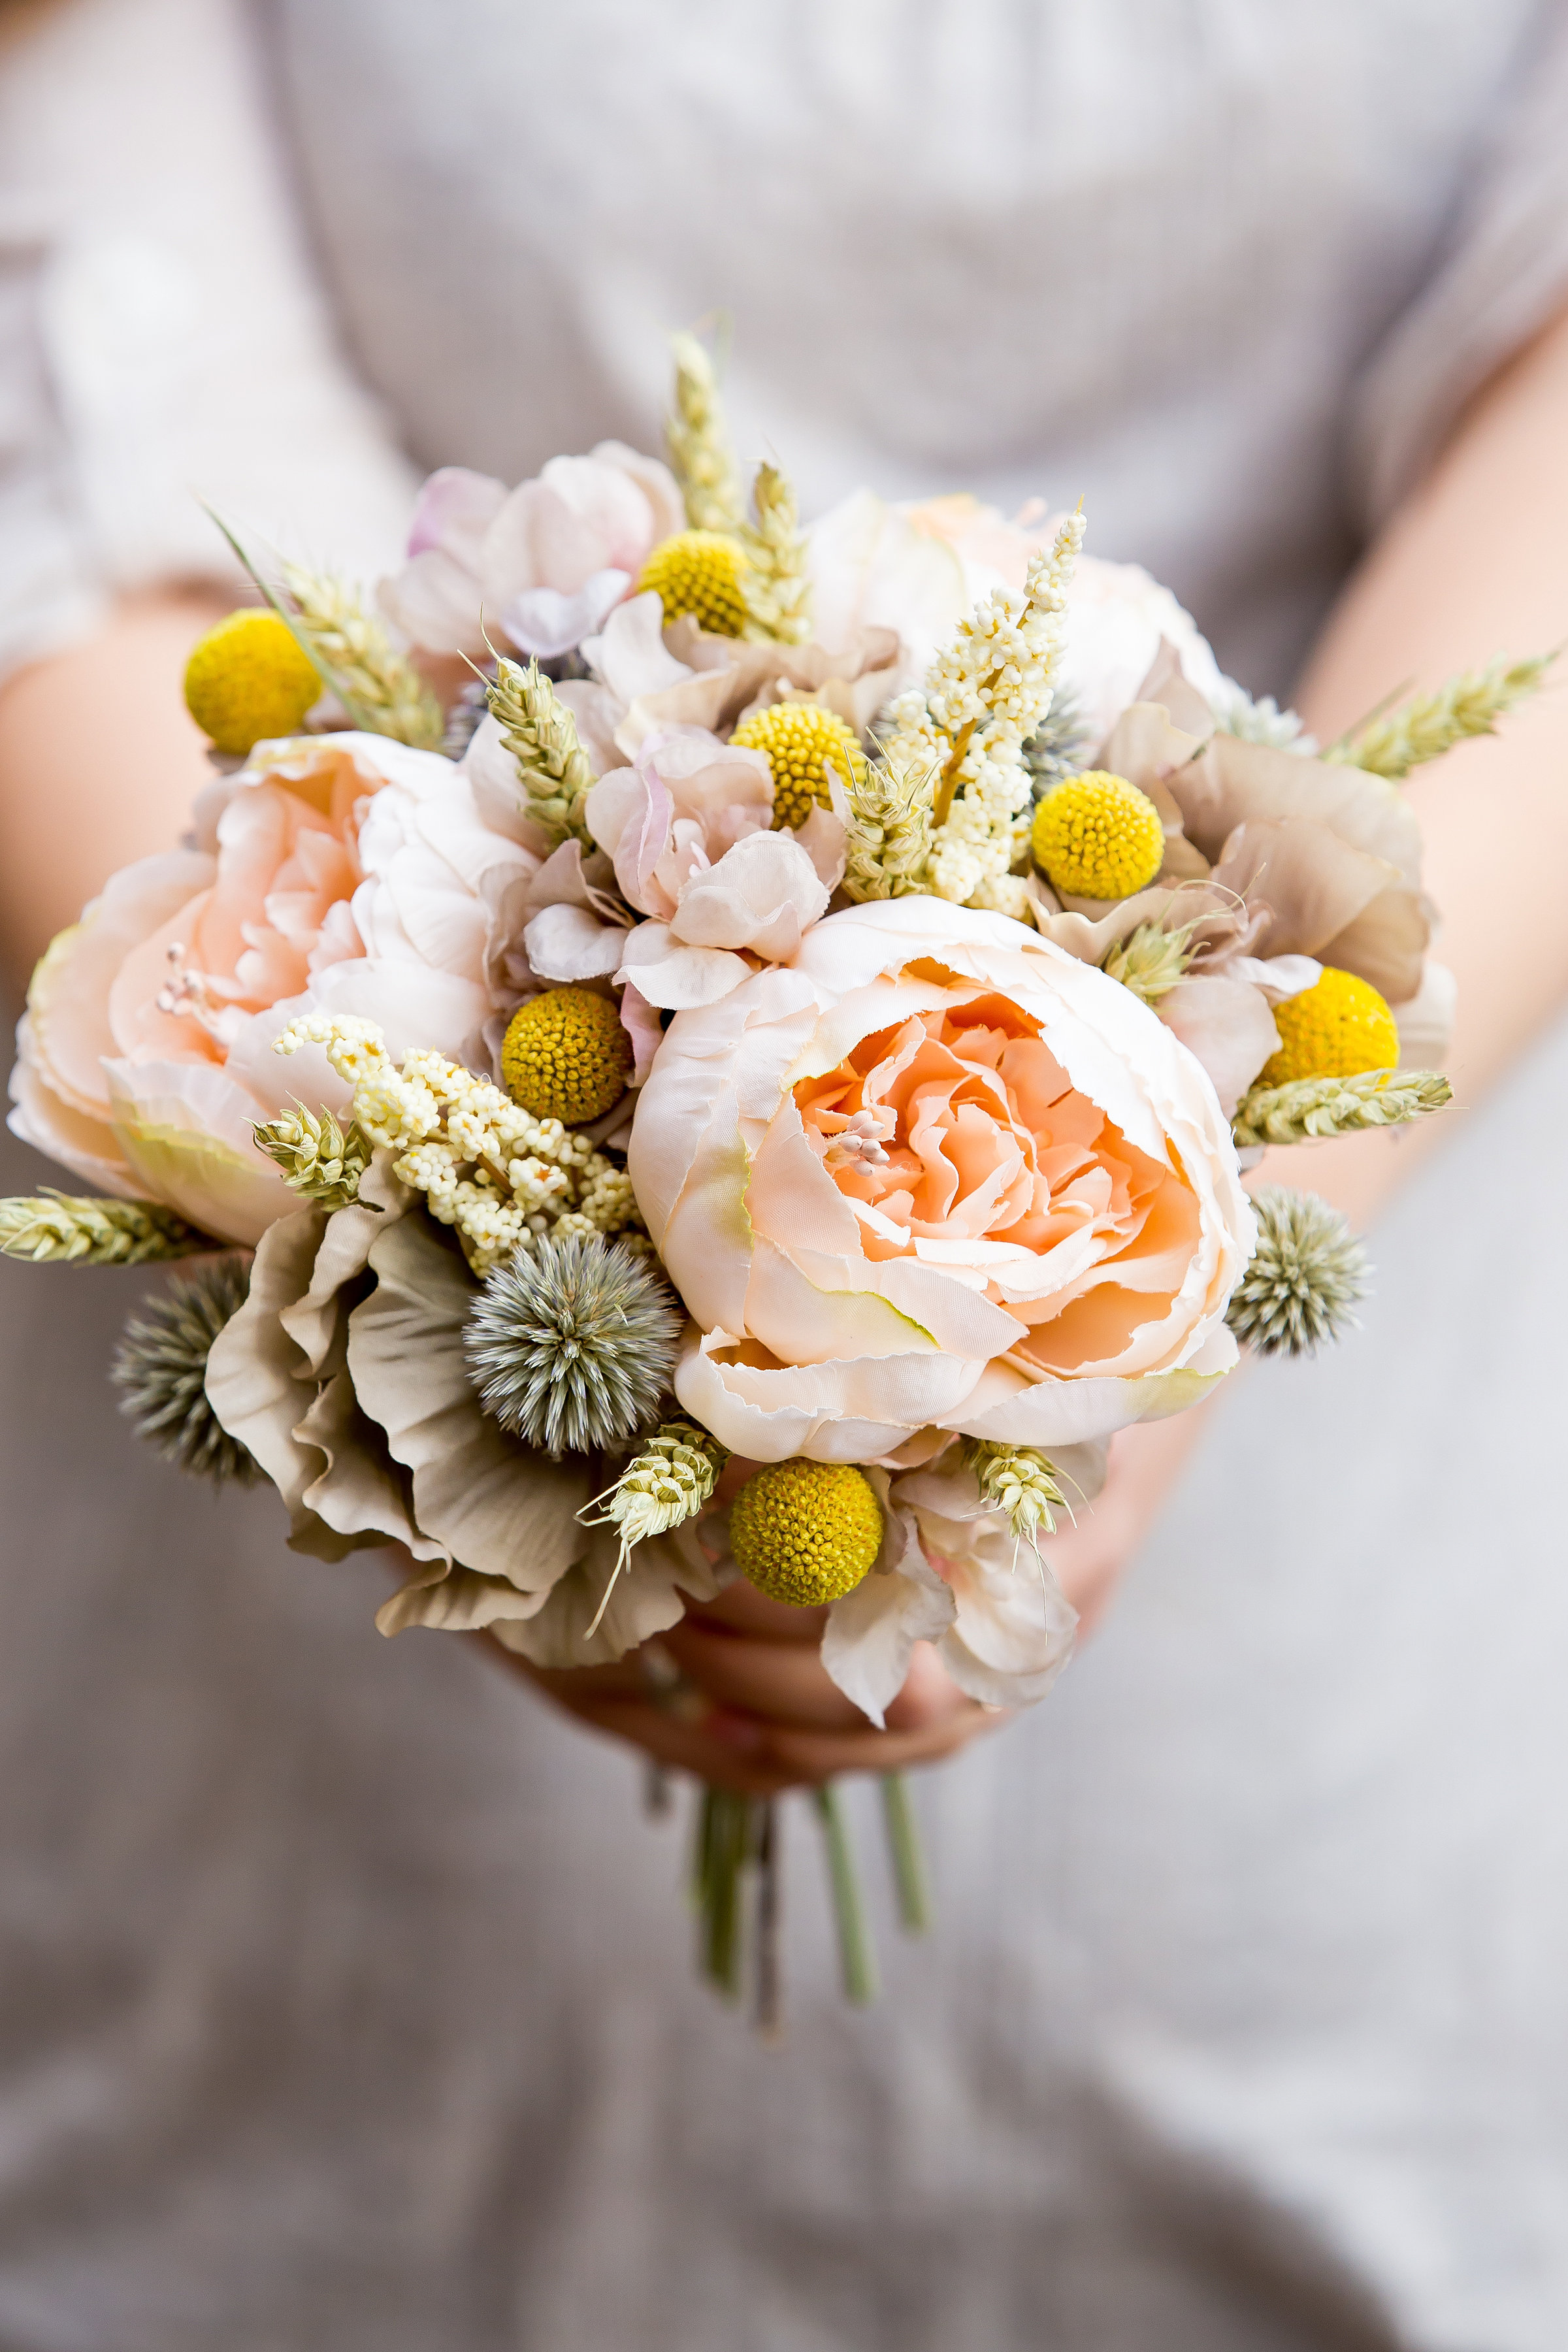 Wedding flowers by pumpkin and pye peach and blush artificial bouquet